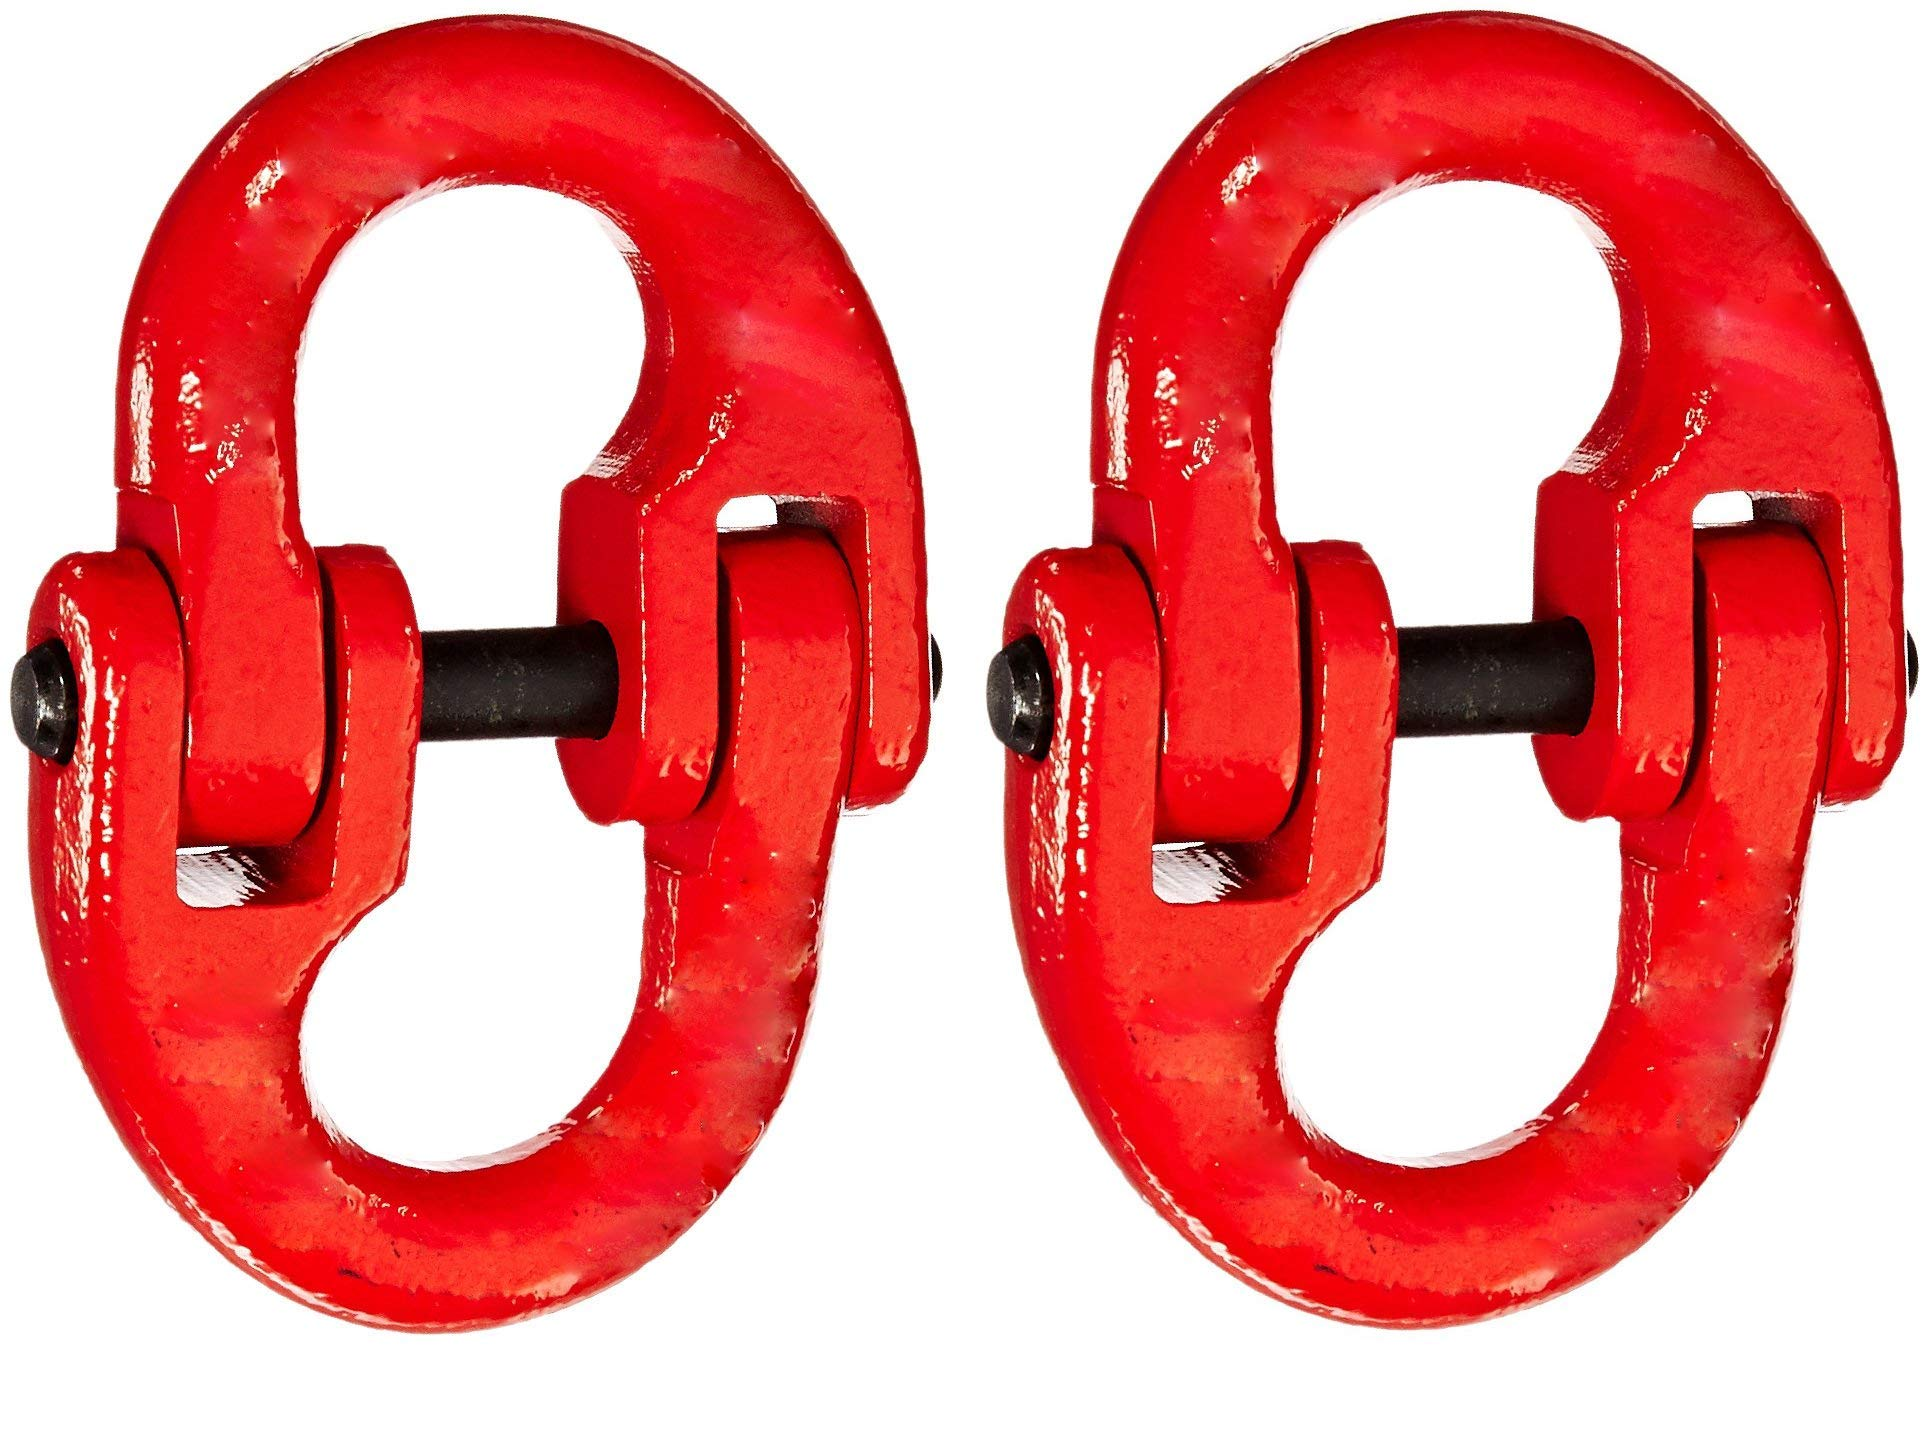 Indusco 54400012 Painted Grade 80 Drop Forged Alloy Steel Connecting Link, 1/2'' Trade, 12000 lbs Working Load Limit (Тwo Рack)